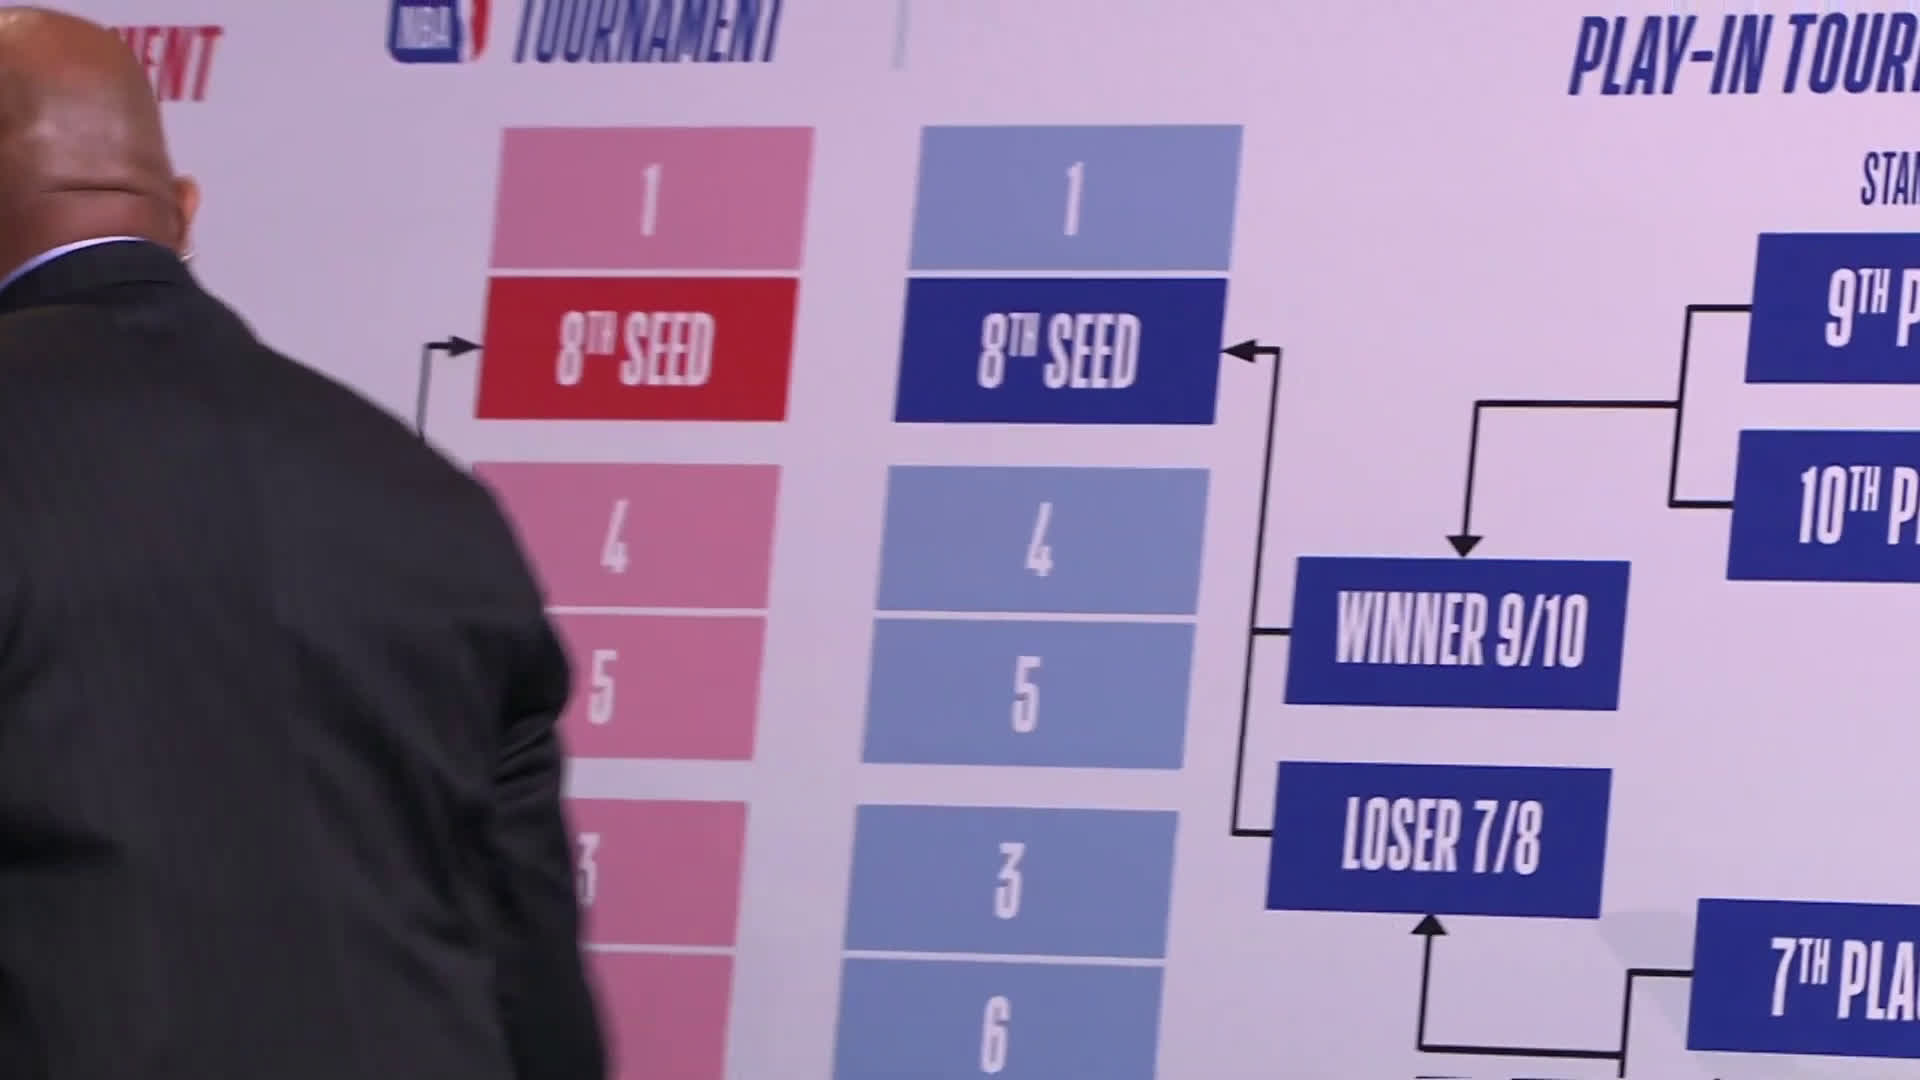 Chuck Talks™: The Play-In Tournament Demystified